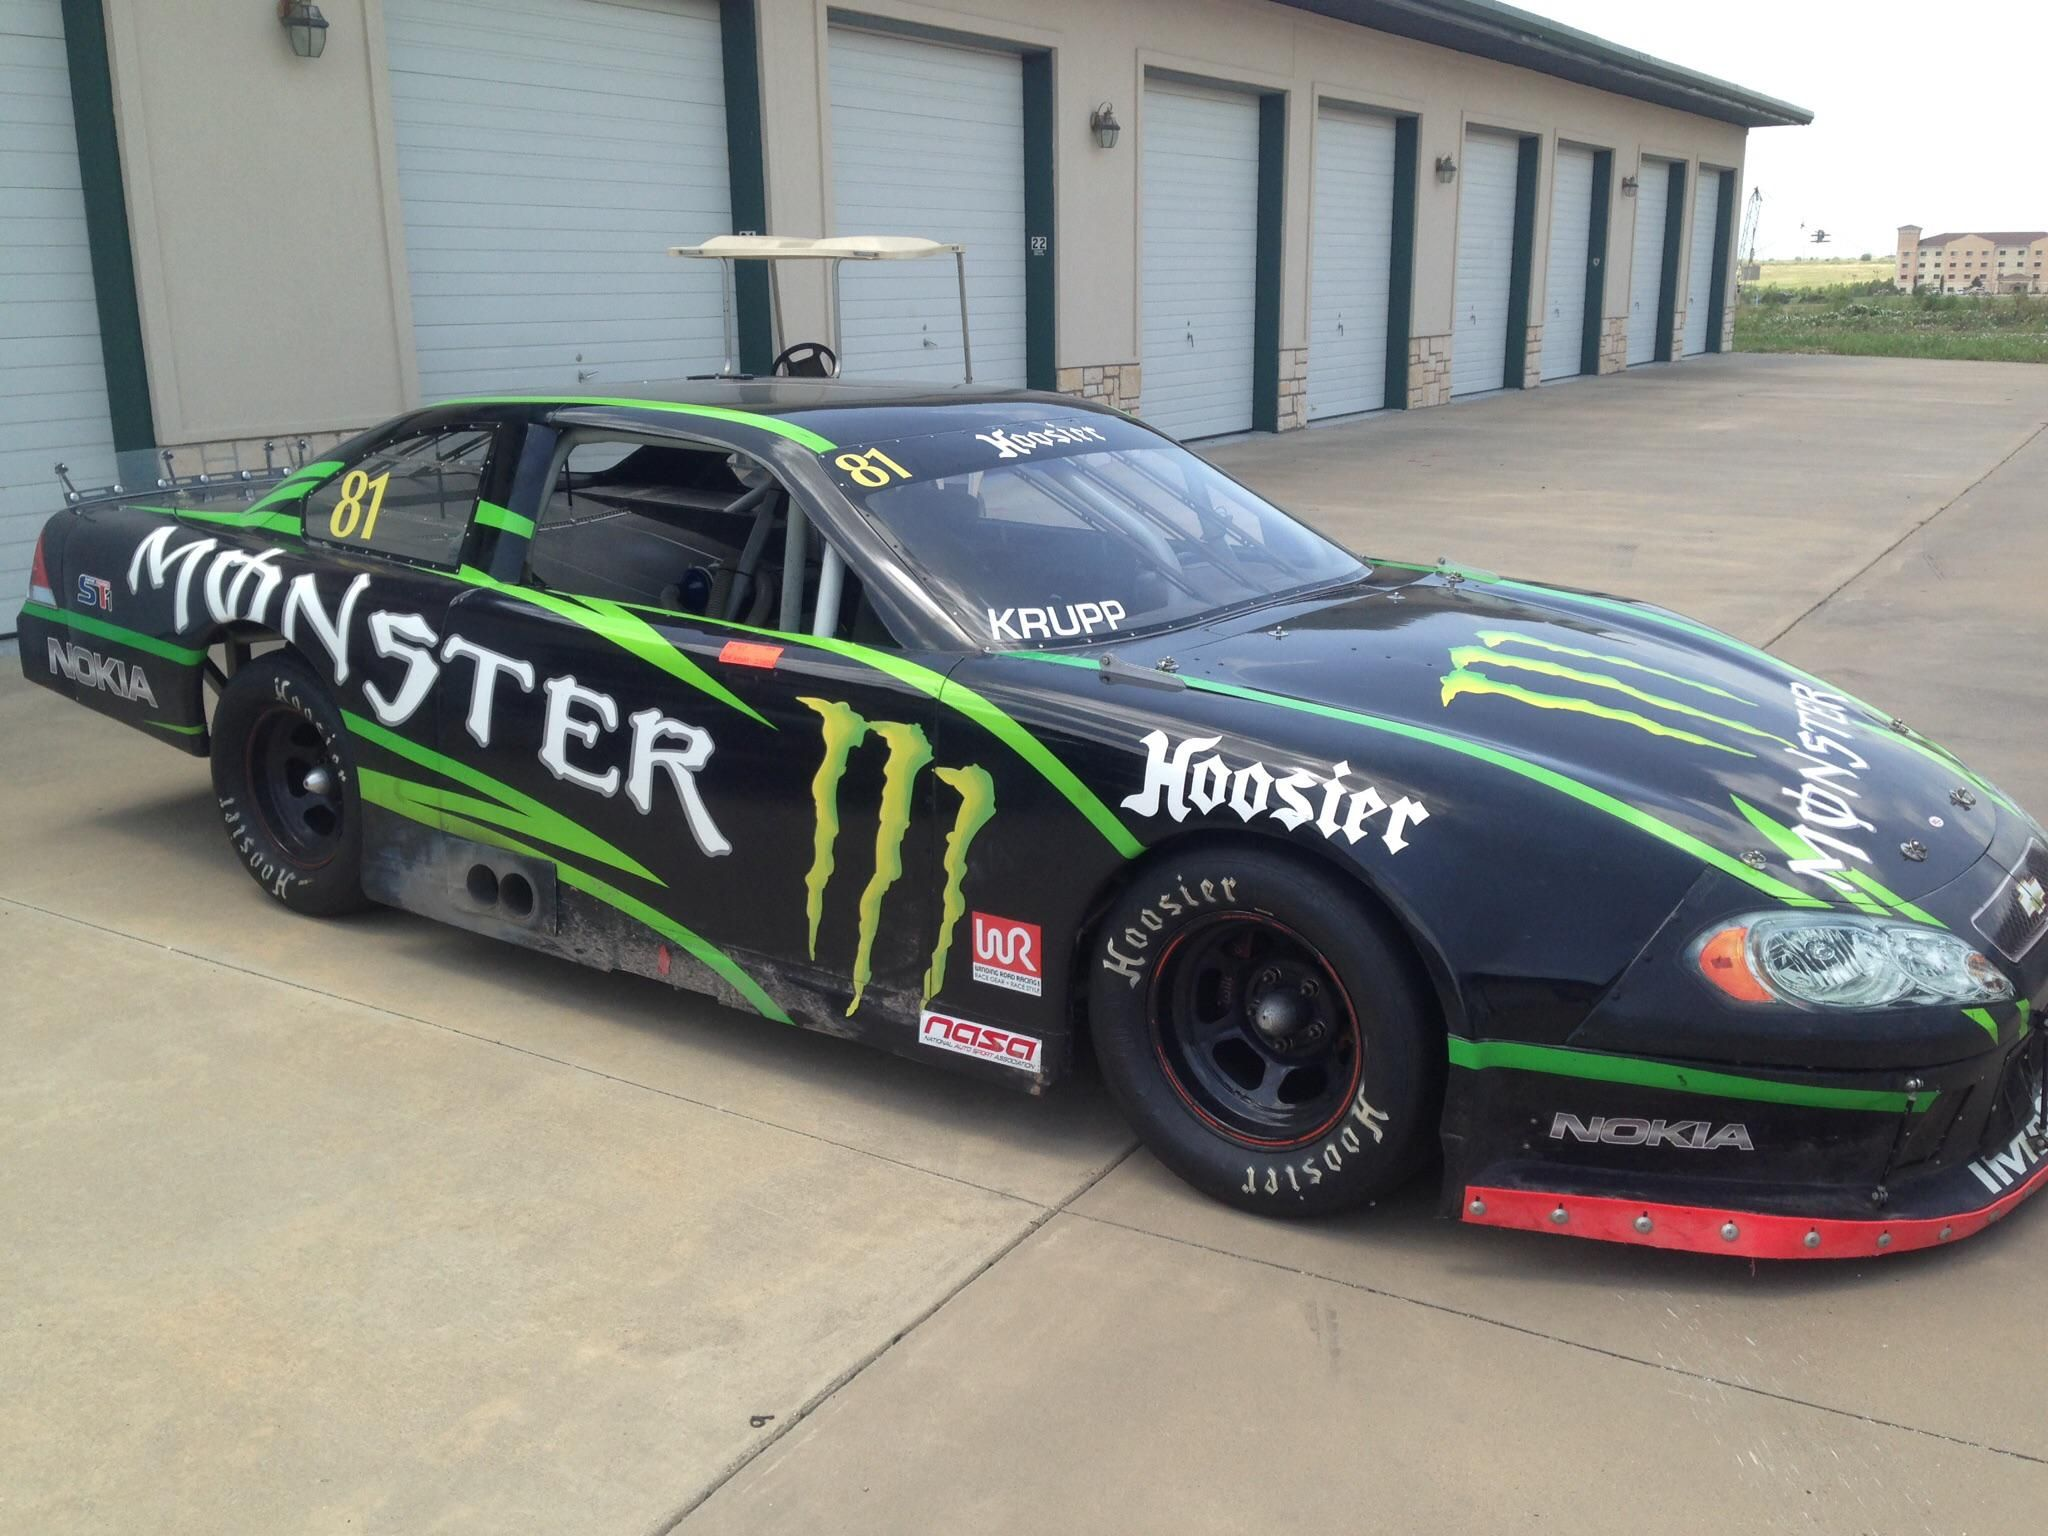 Monster Energy Gives Me That Power To Race Through The Day Without Having  To Slow Down! | Energy Drinks | Pinterest | Monsters And Cars